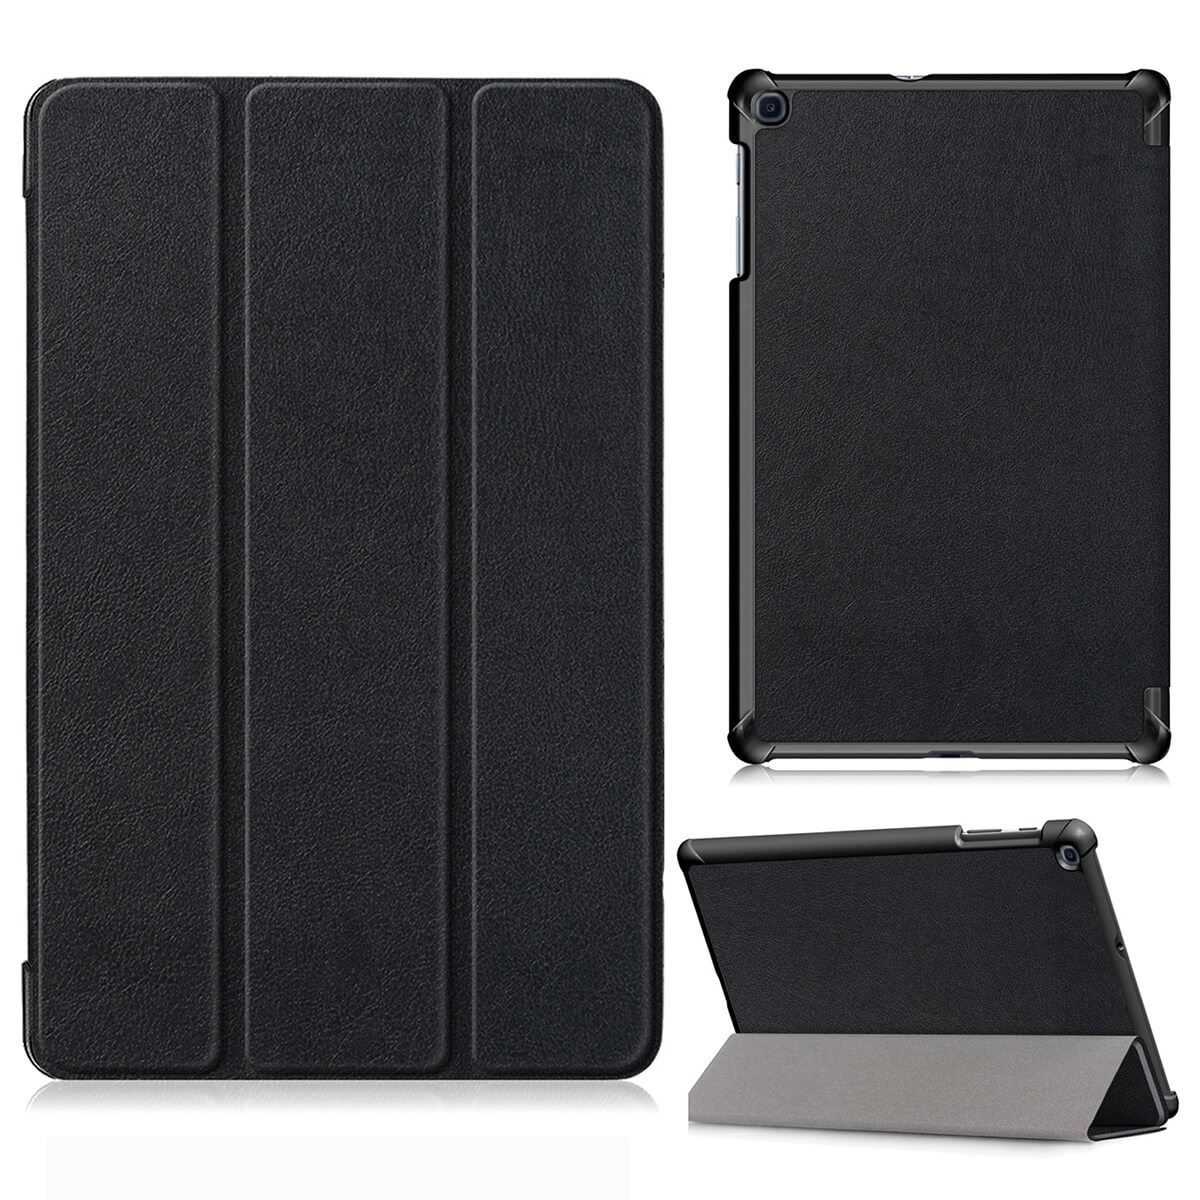 Flip-Cover-Trifold-Case-For-T510-T515-Samsung-Galaxy-Tab-A-2019-10-1-Full-Body thumbnail 4